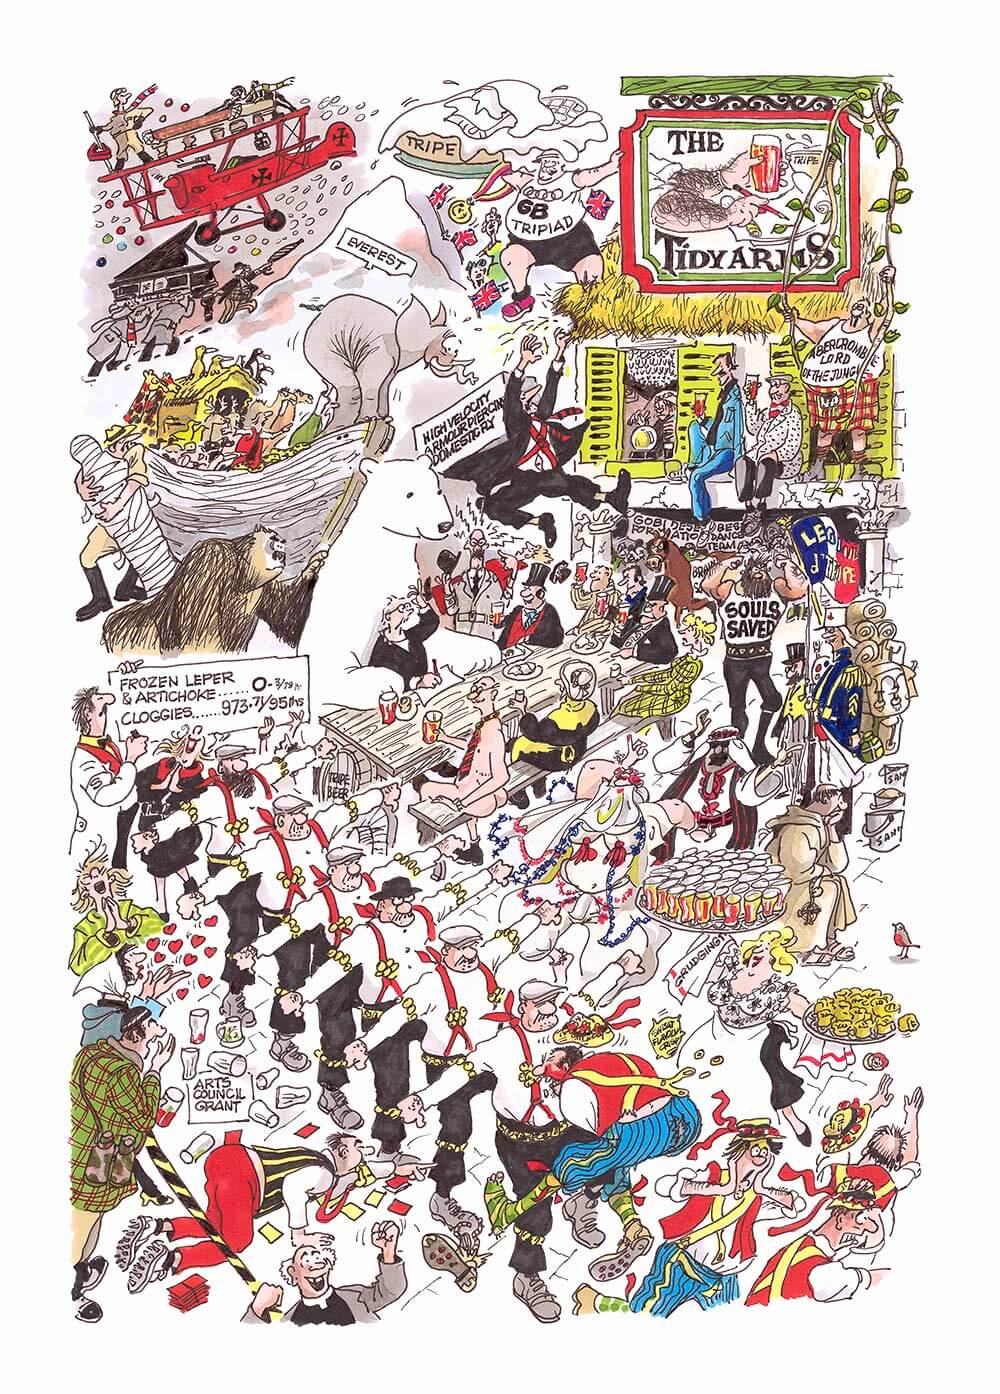 The Tidy Arms is a limited edtion print which includes many of Bill Tidy's most famous characters